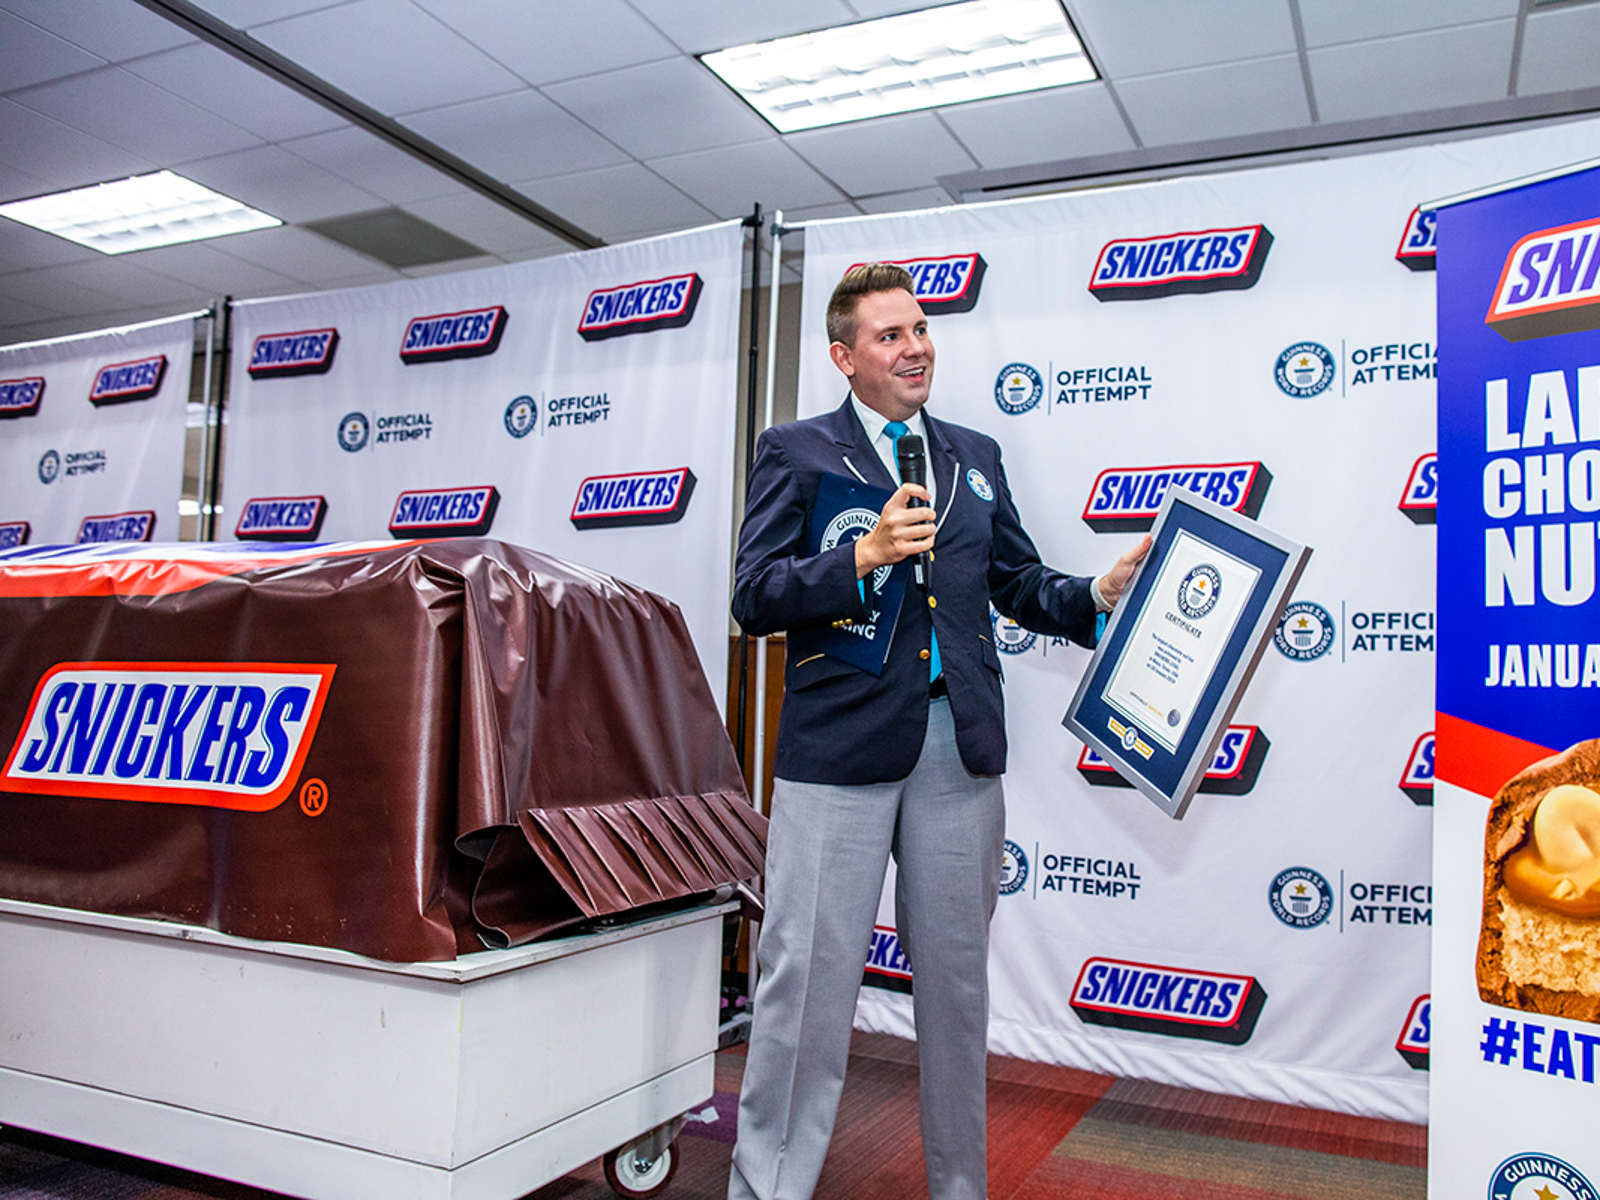 Guinness World Record Snickers